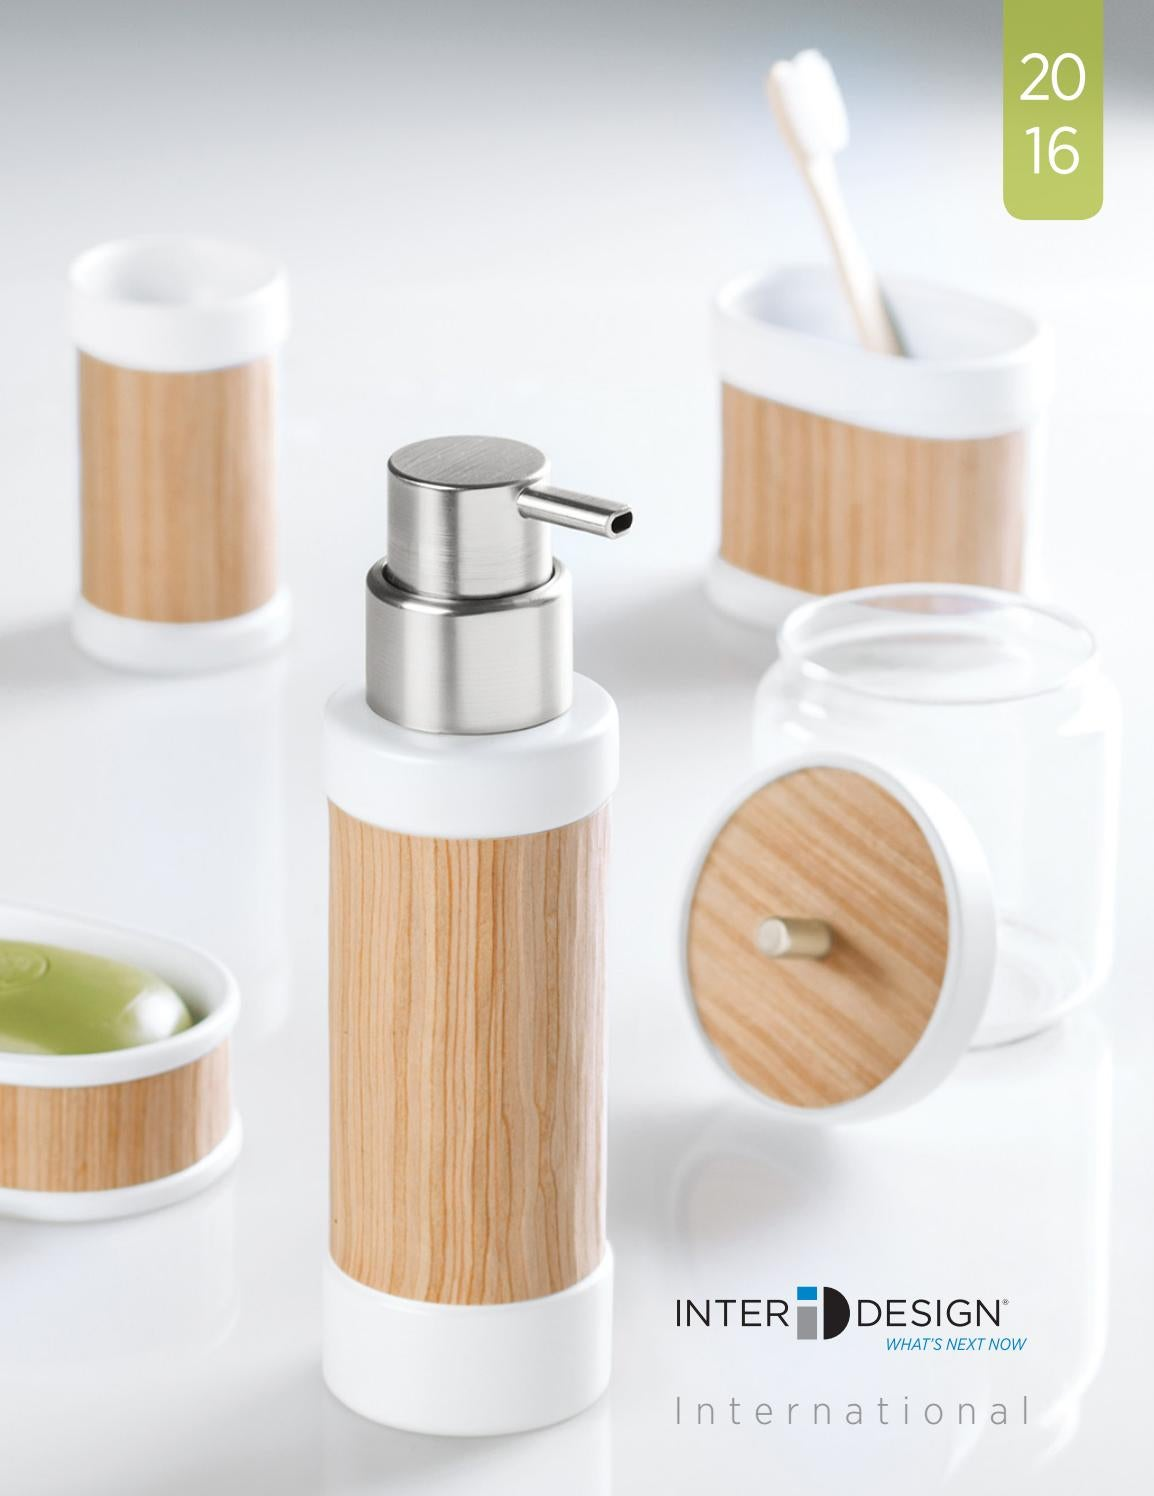 Clear//Chrome Double Soap Pump for the Bathroom InterDesign York Soap Dispenser Made of Plastic